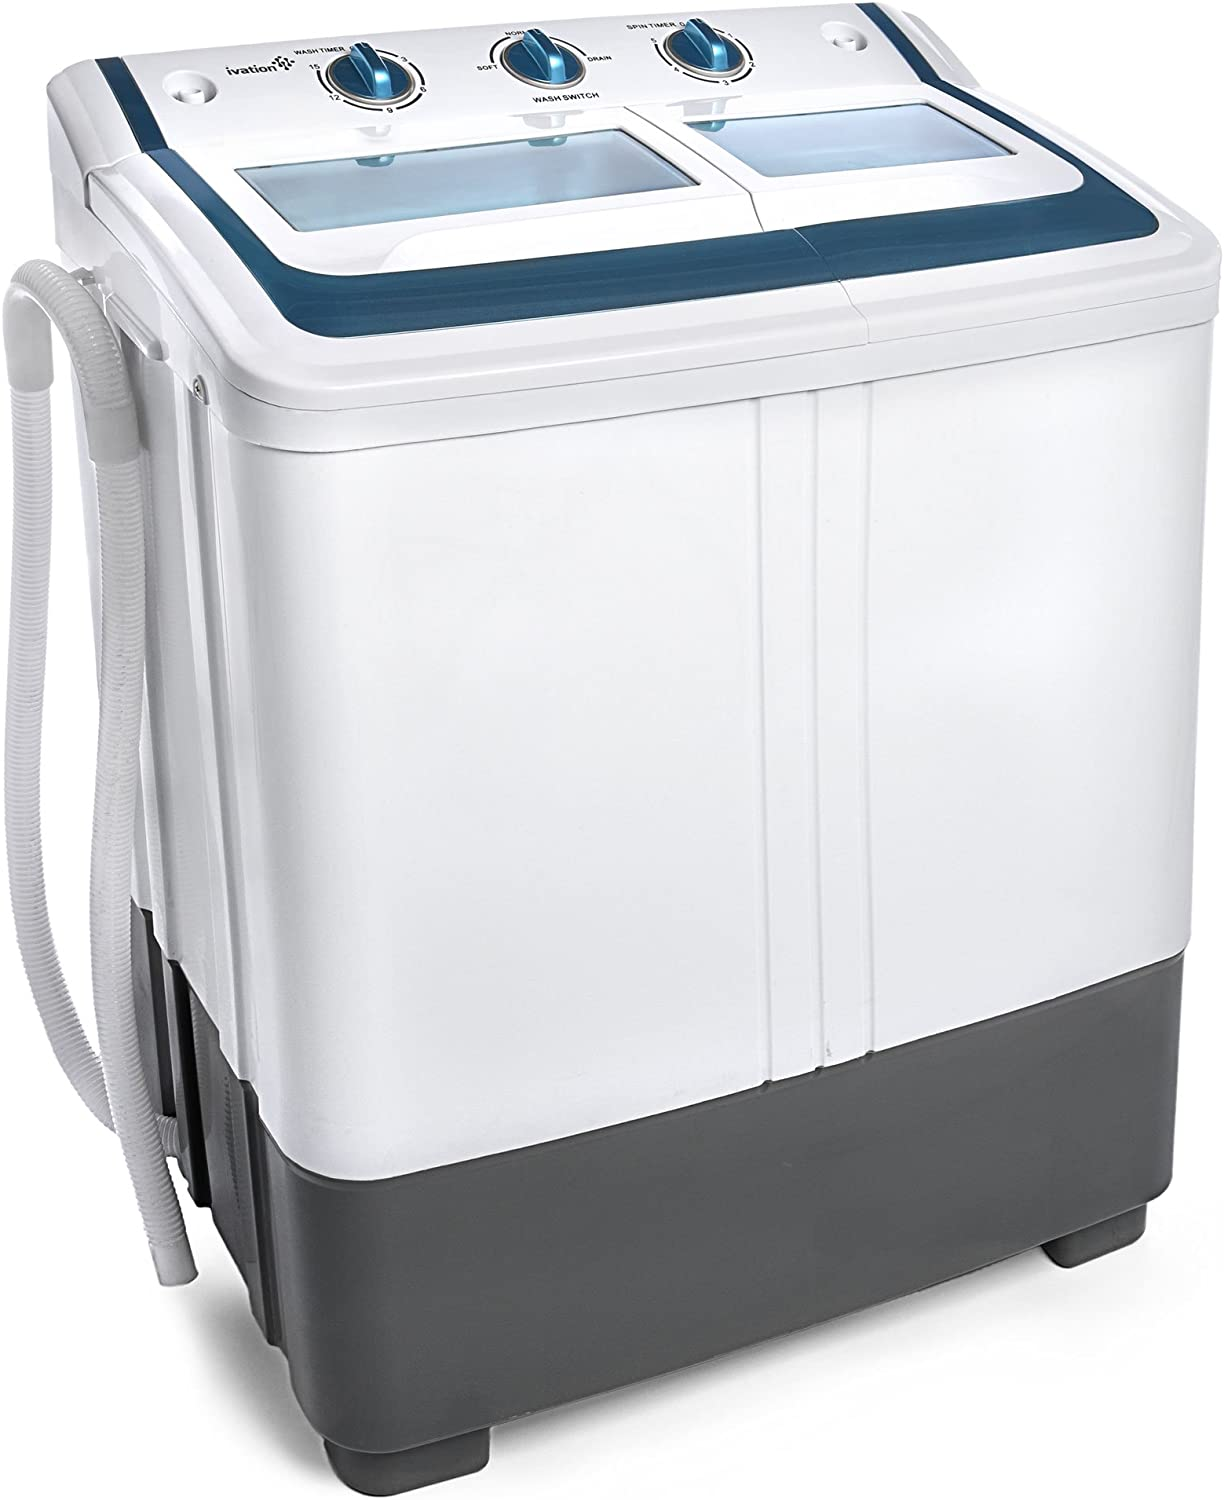 RVs NAKORNO Portable Compact Washing Machine Blue /& White Apartments 9.5 lbs Capacity Camping Small Semi-Automatic Compact Washer with Timer Control Single Translucent Tub for Dorms